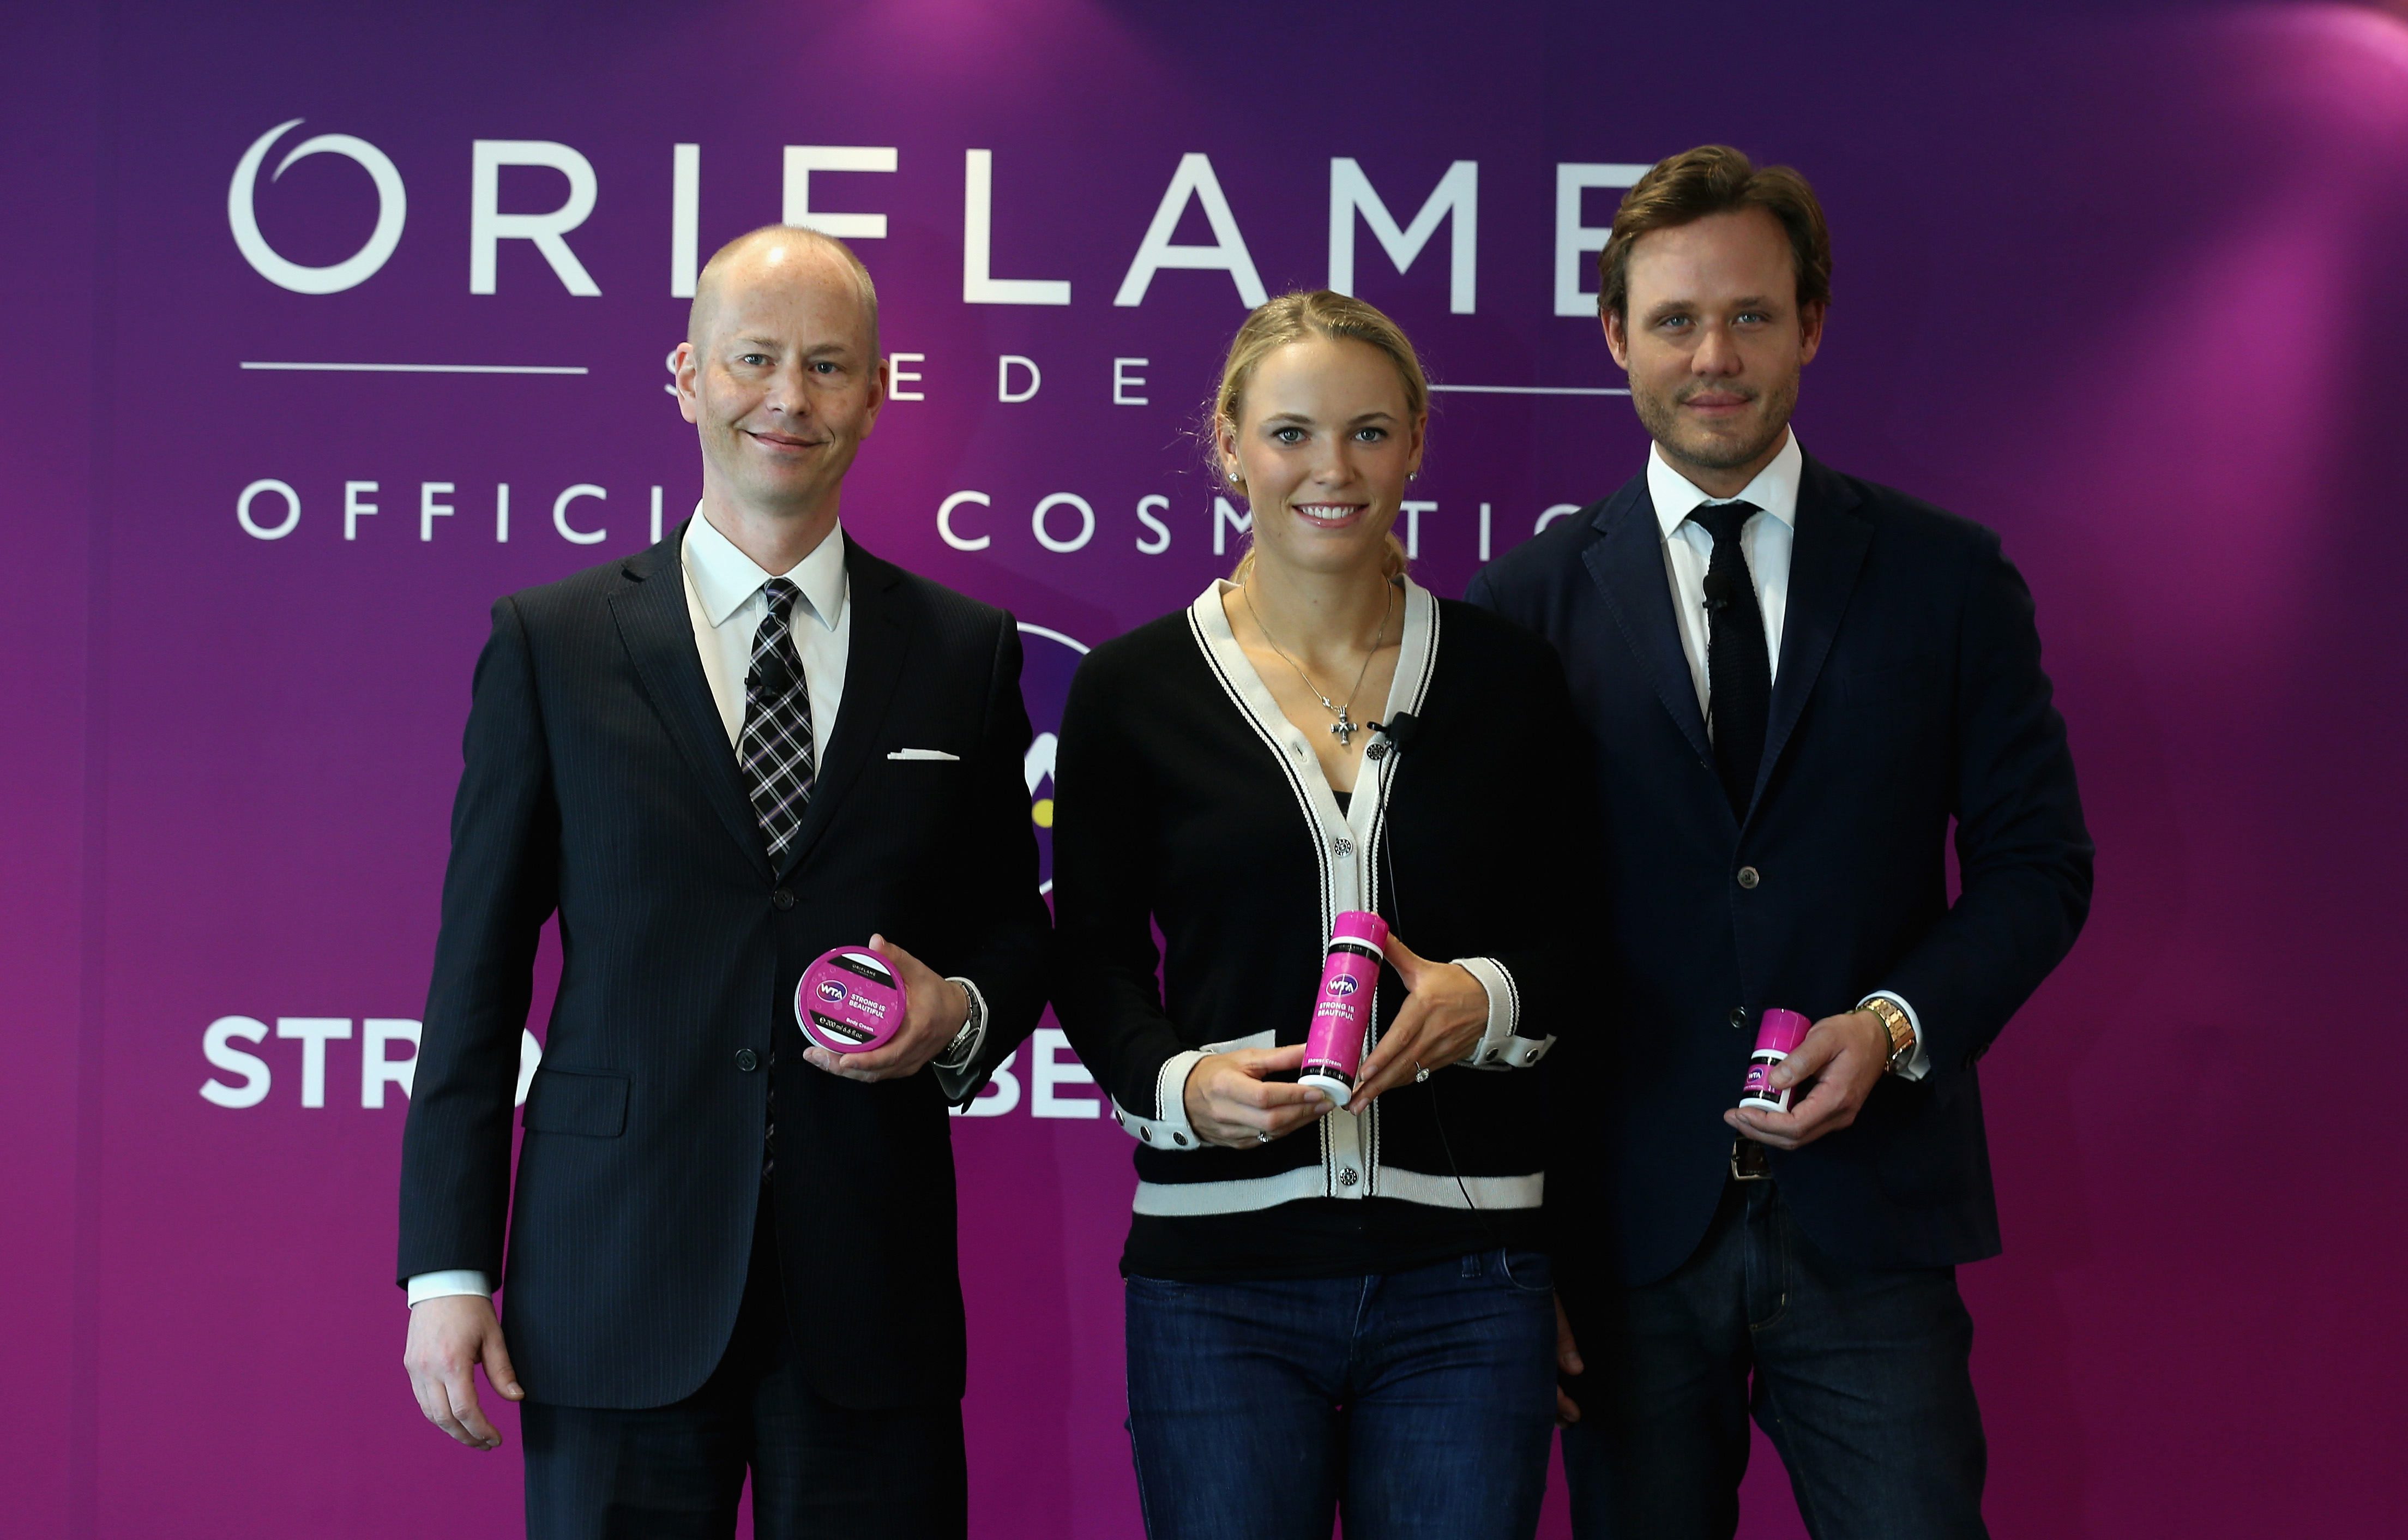 Oriflame announces the official launch of its WTA Strong is Beautiful product line with the help of Michael Cervell, Caroline Wozniacki and Jonas Wramell. (Photo: Business Wire)